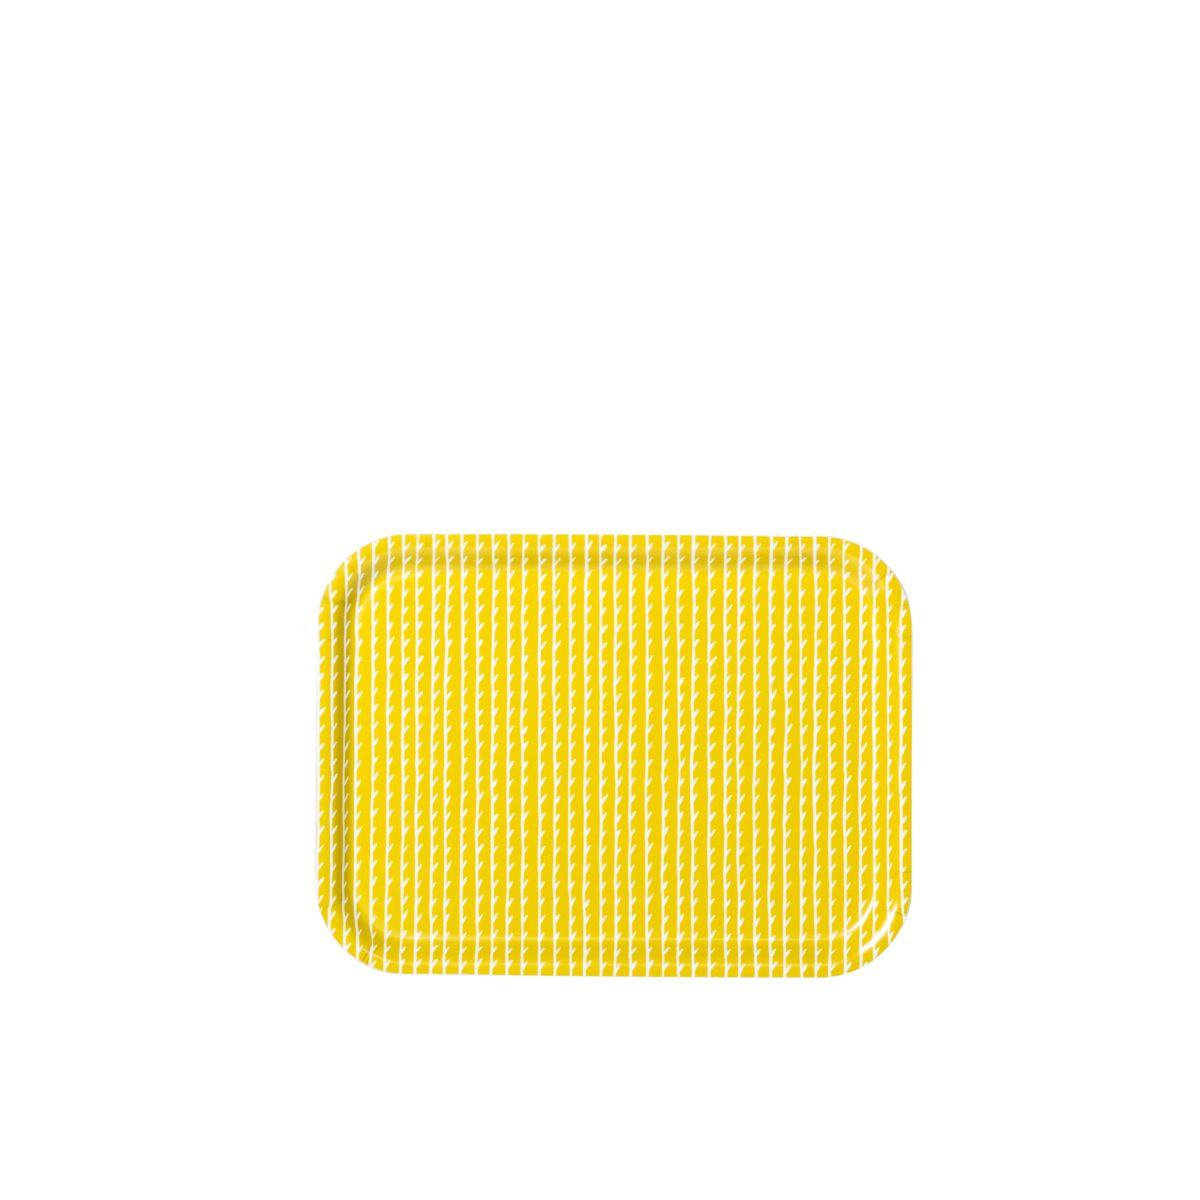 Rivi Tray yellow / white small